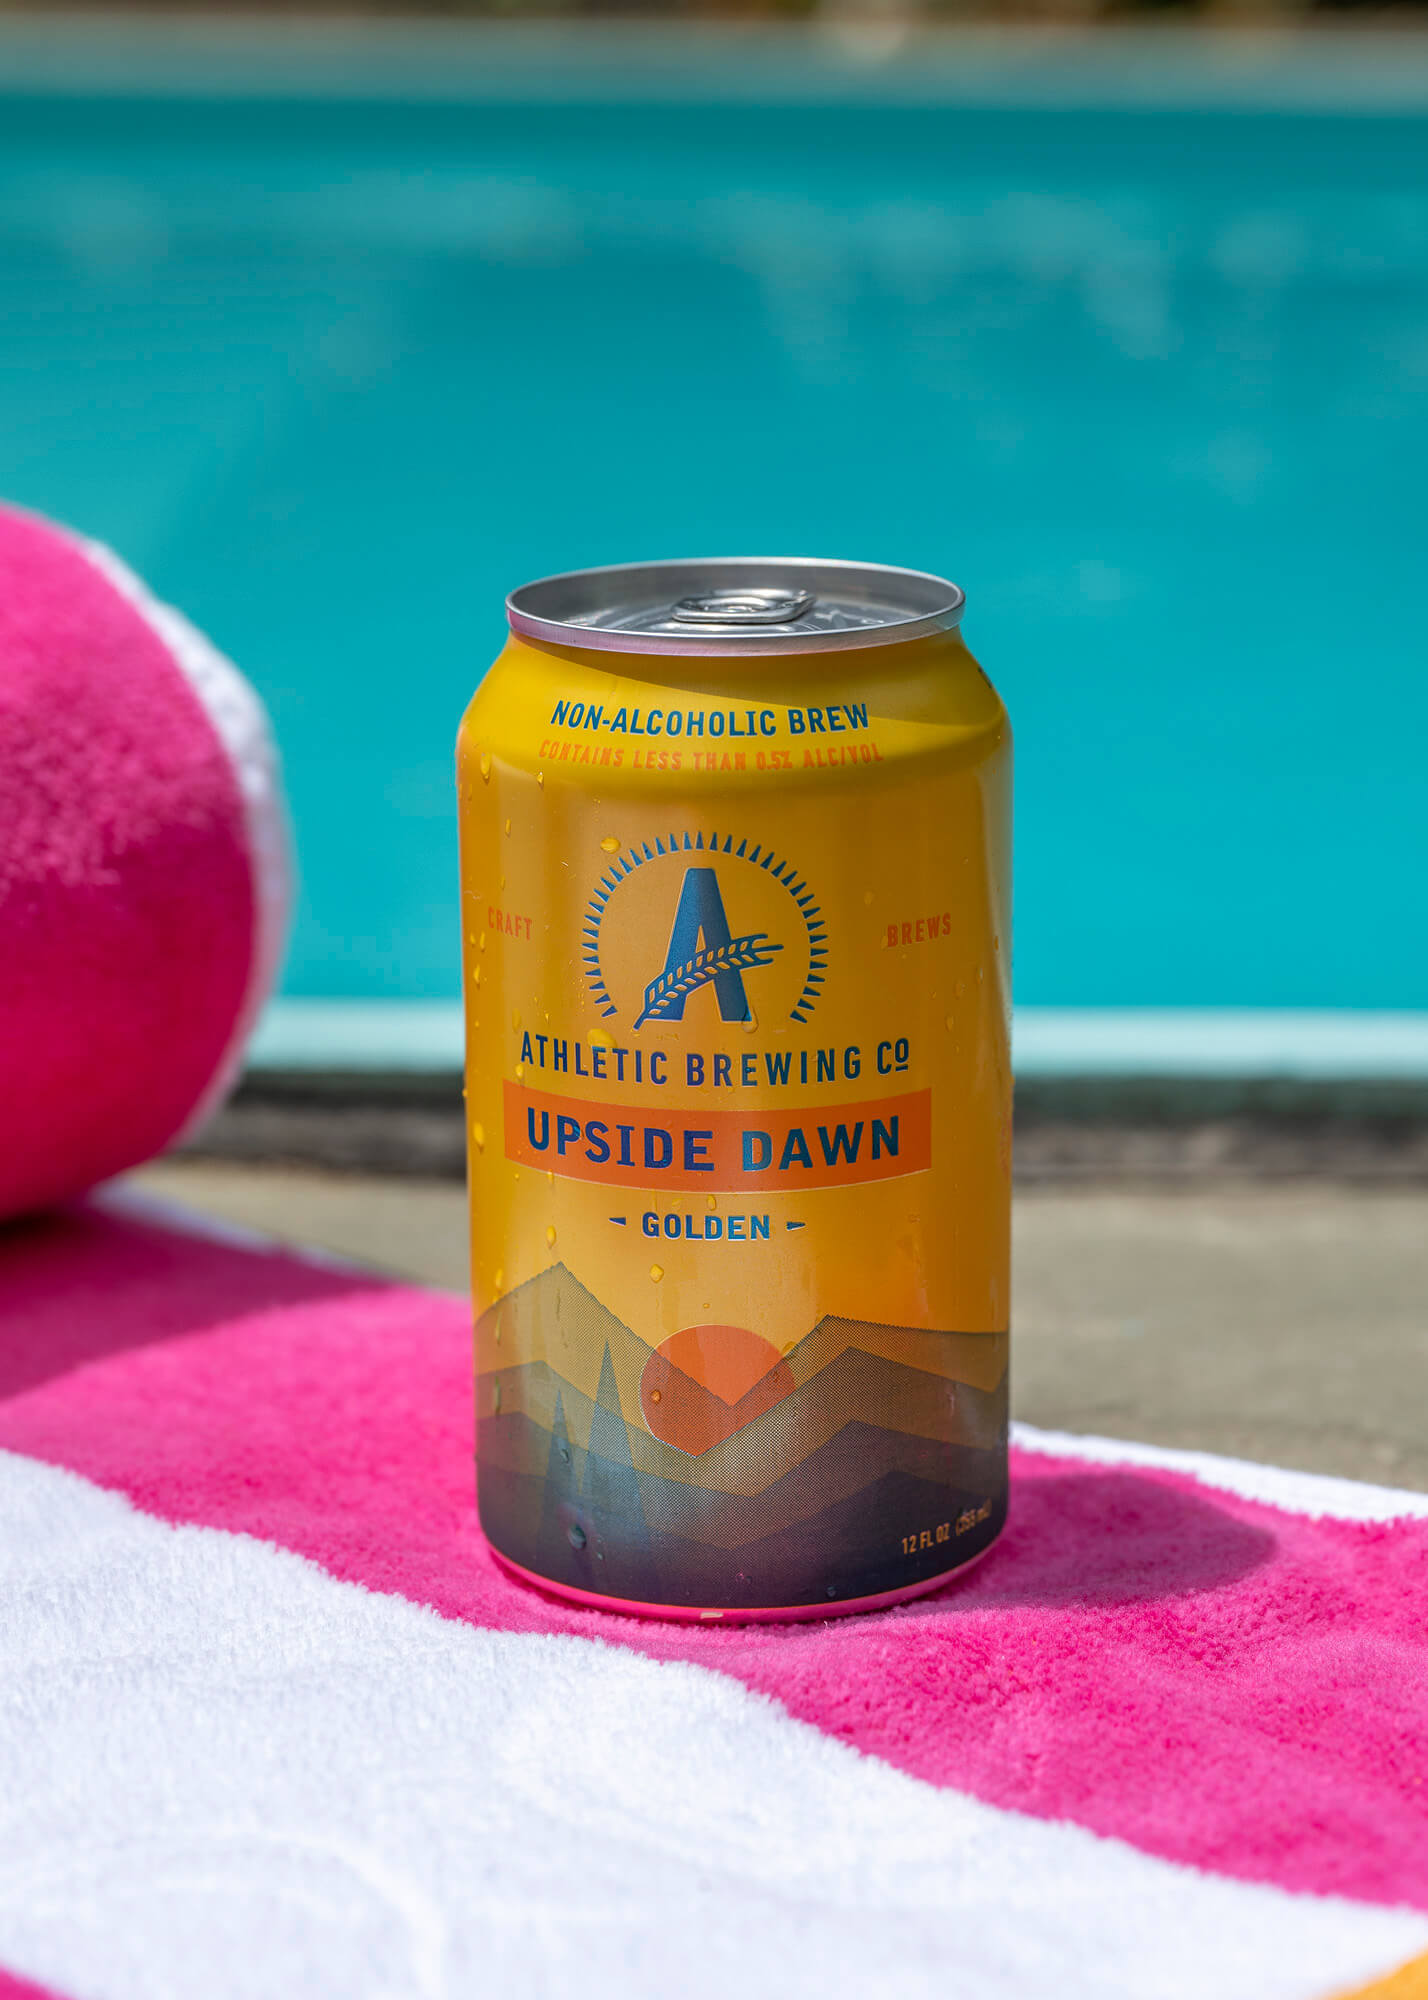 Athletic Brewing Company Upside Down Golden Ale